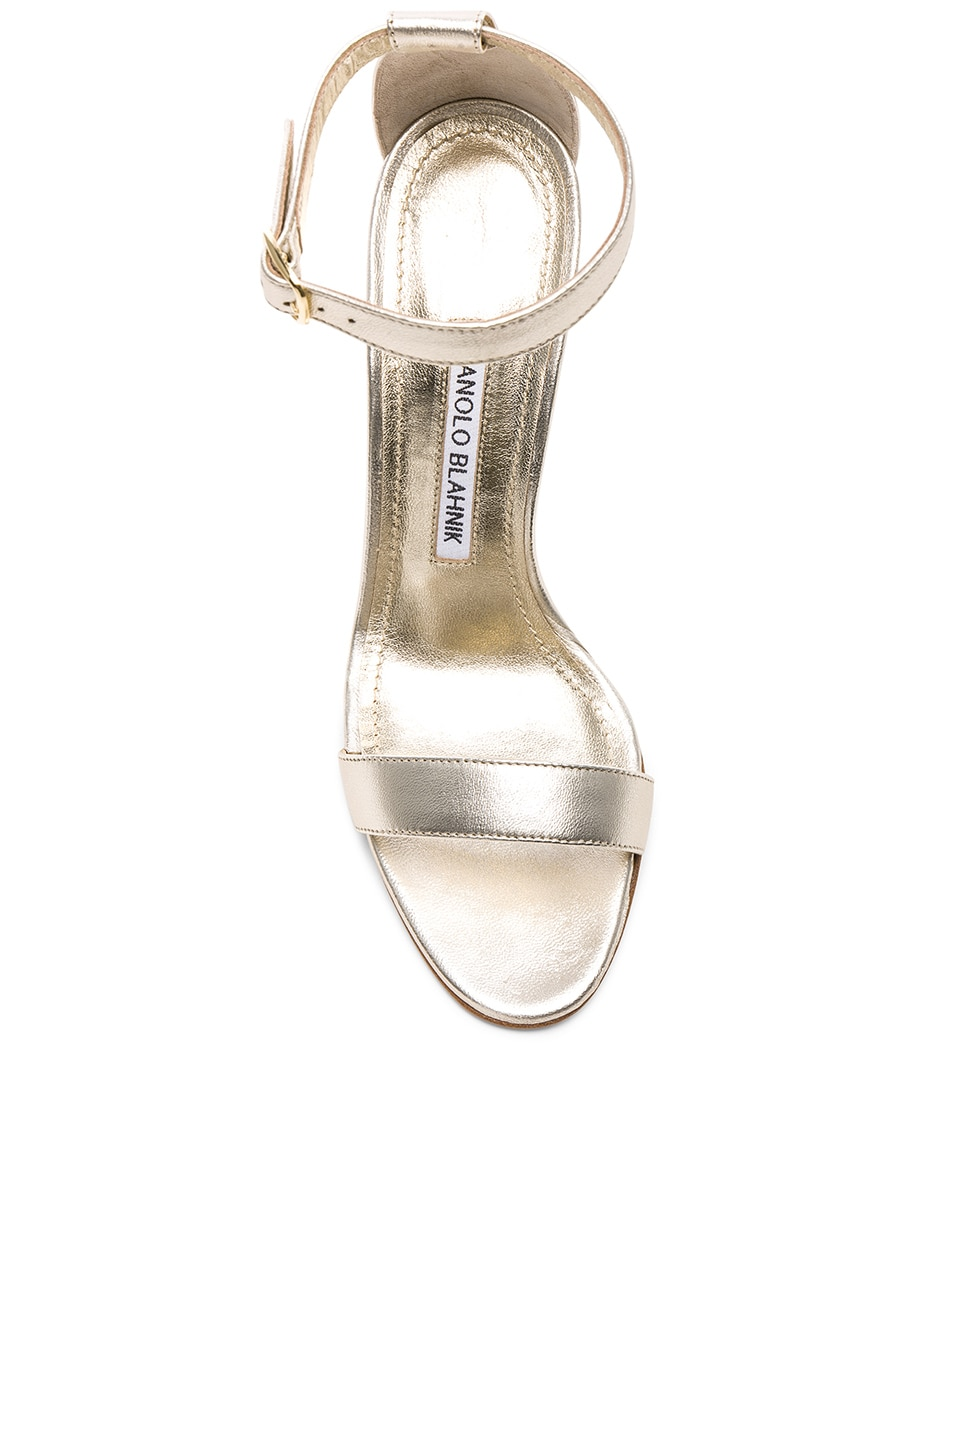 Image 4 of Manolo Blahnik Leather Chaos 105 Heels in Light Gold Leather